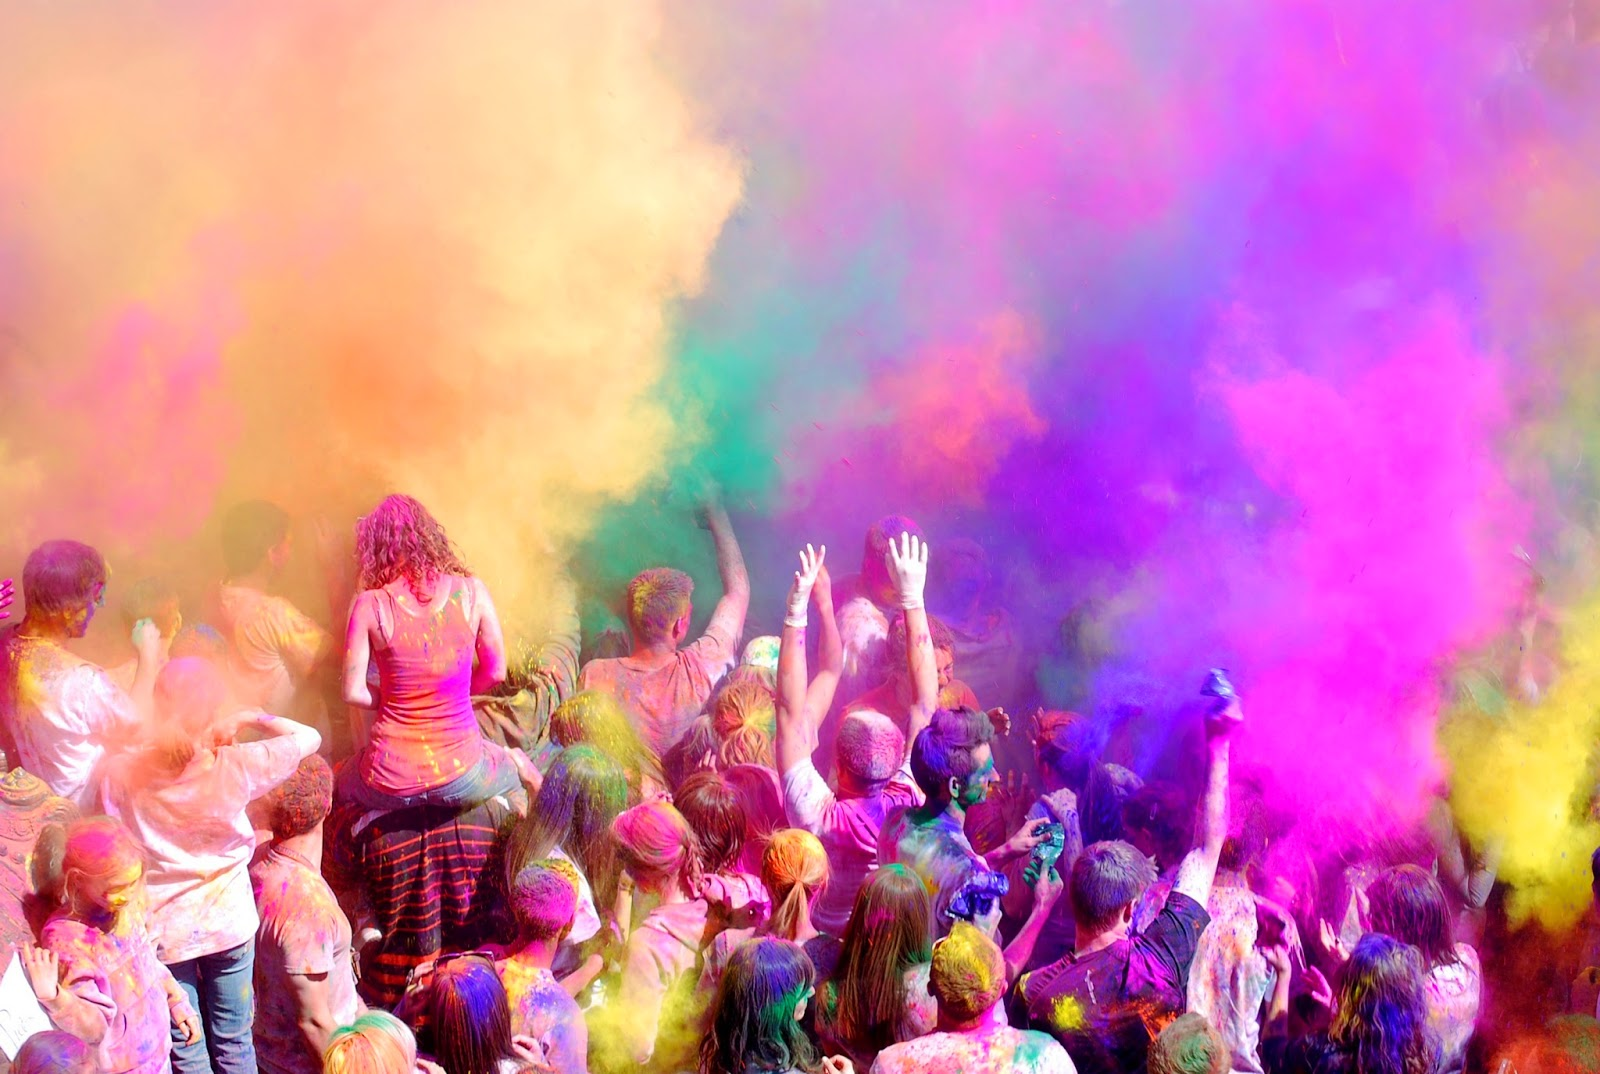 Top 10 Happy Holi 2014 Wallpapers, Images, Snapshots, Photos, Pics